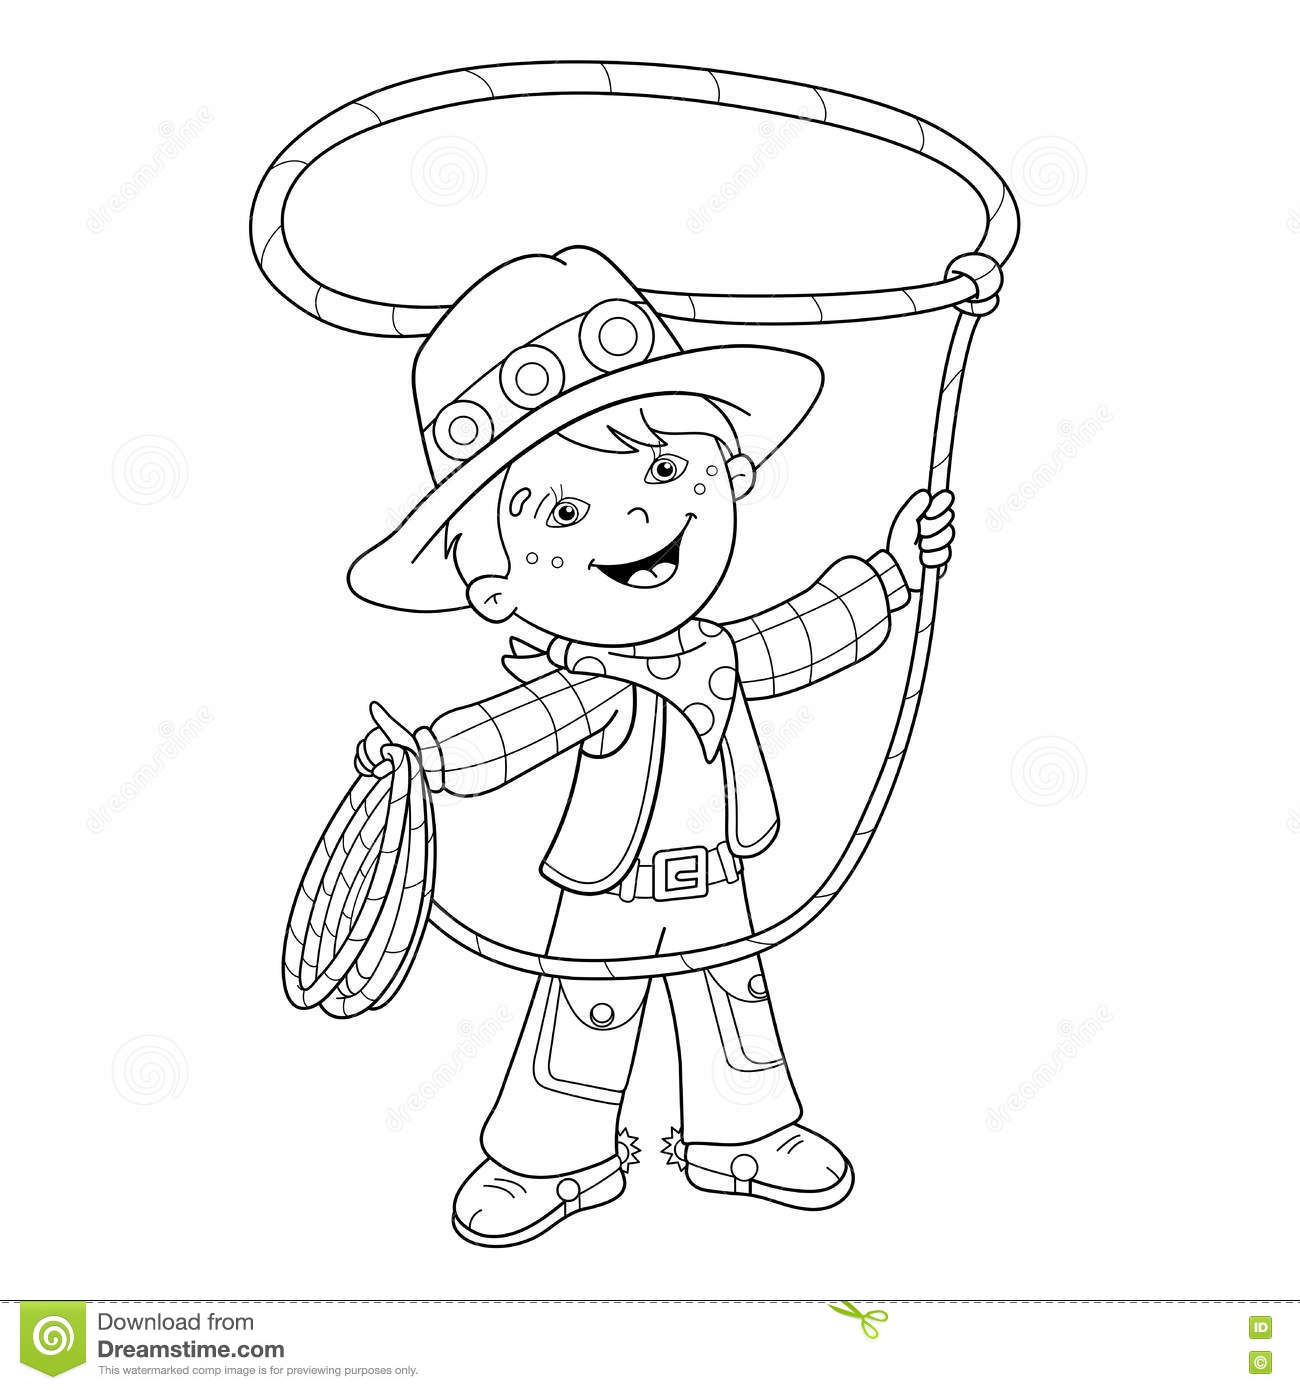 coloring page outline of cartoon cowboy with lasso stock vector